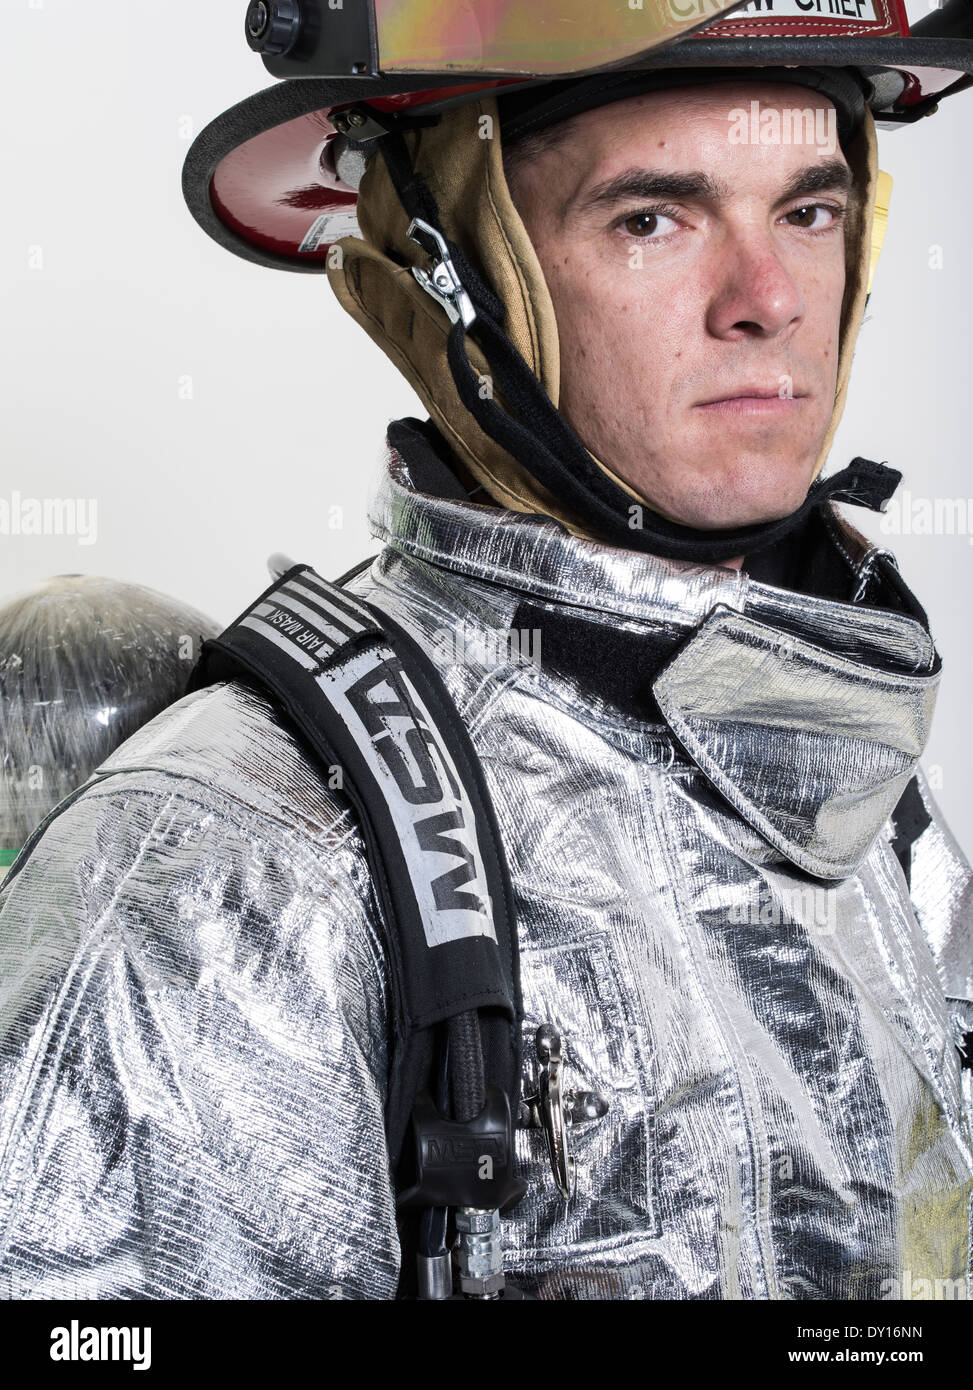 Male firefighter in high temperature aviation fuel   firefighting uniform with breathing apparatus - Stock Image